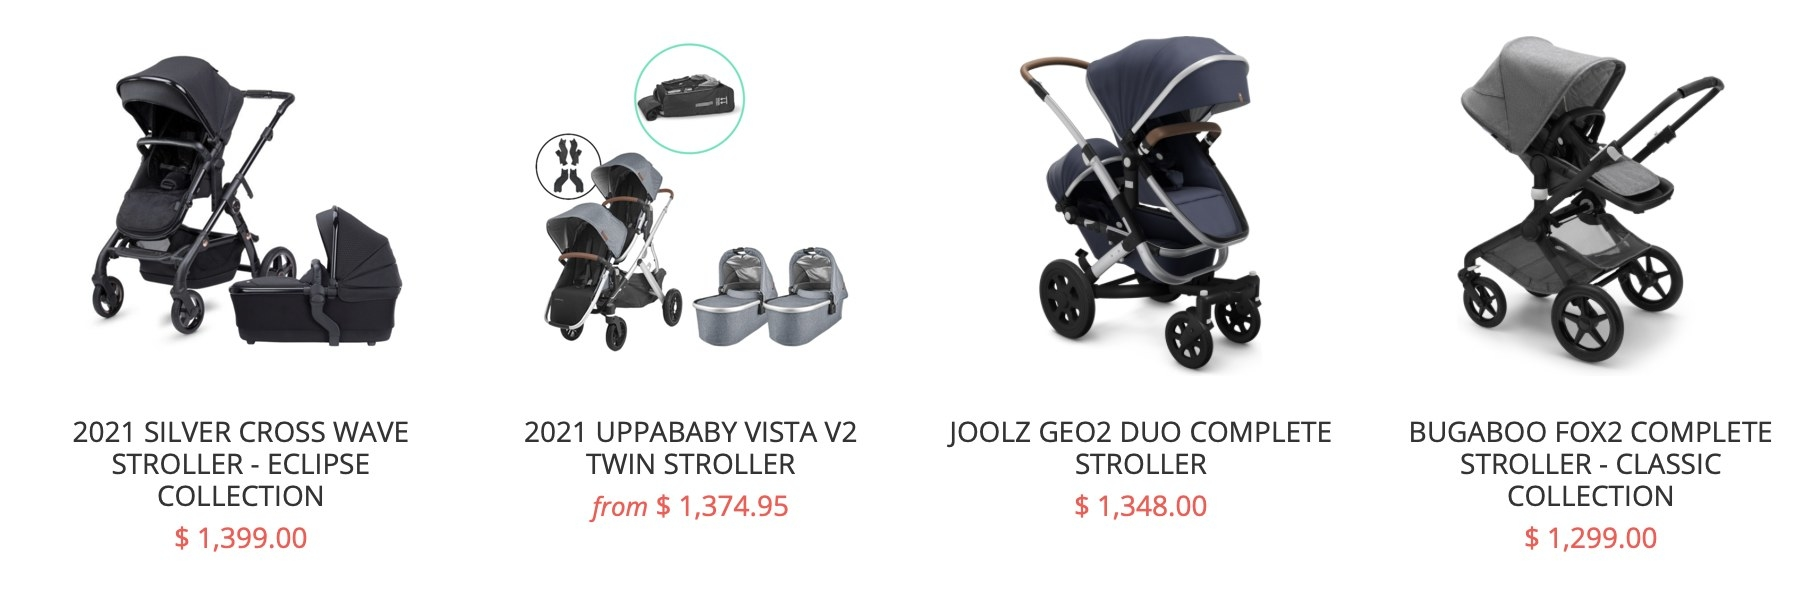 Screenshot of expensive strollers